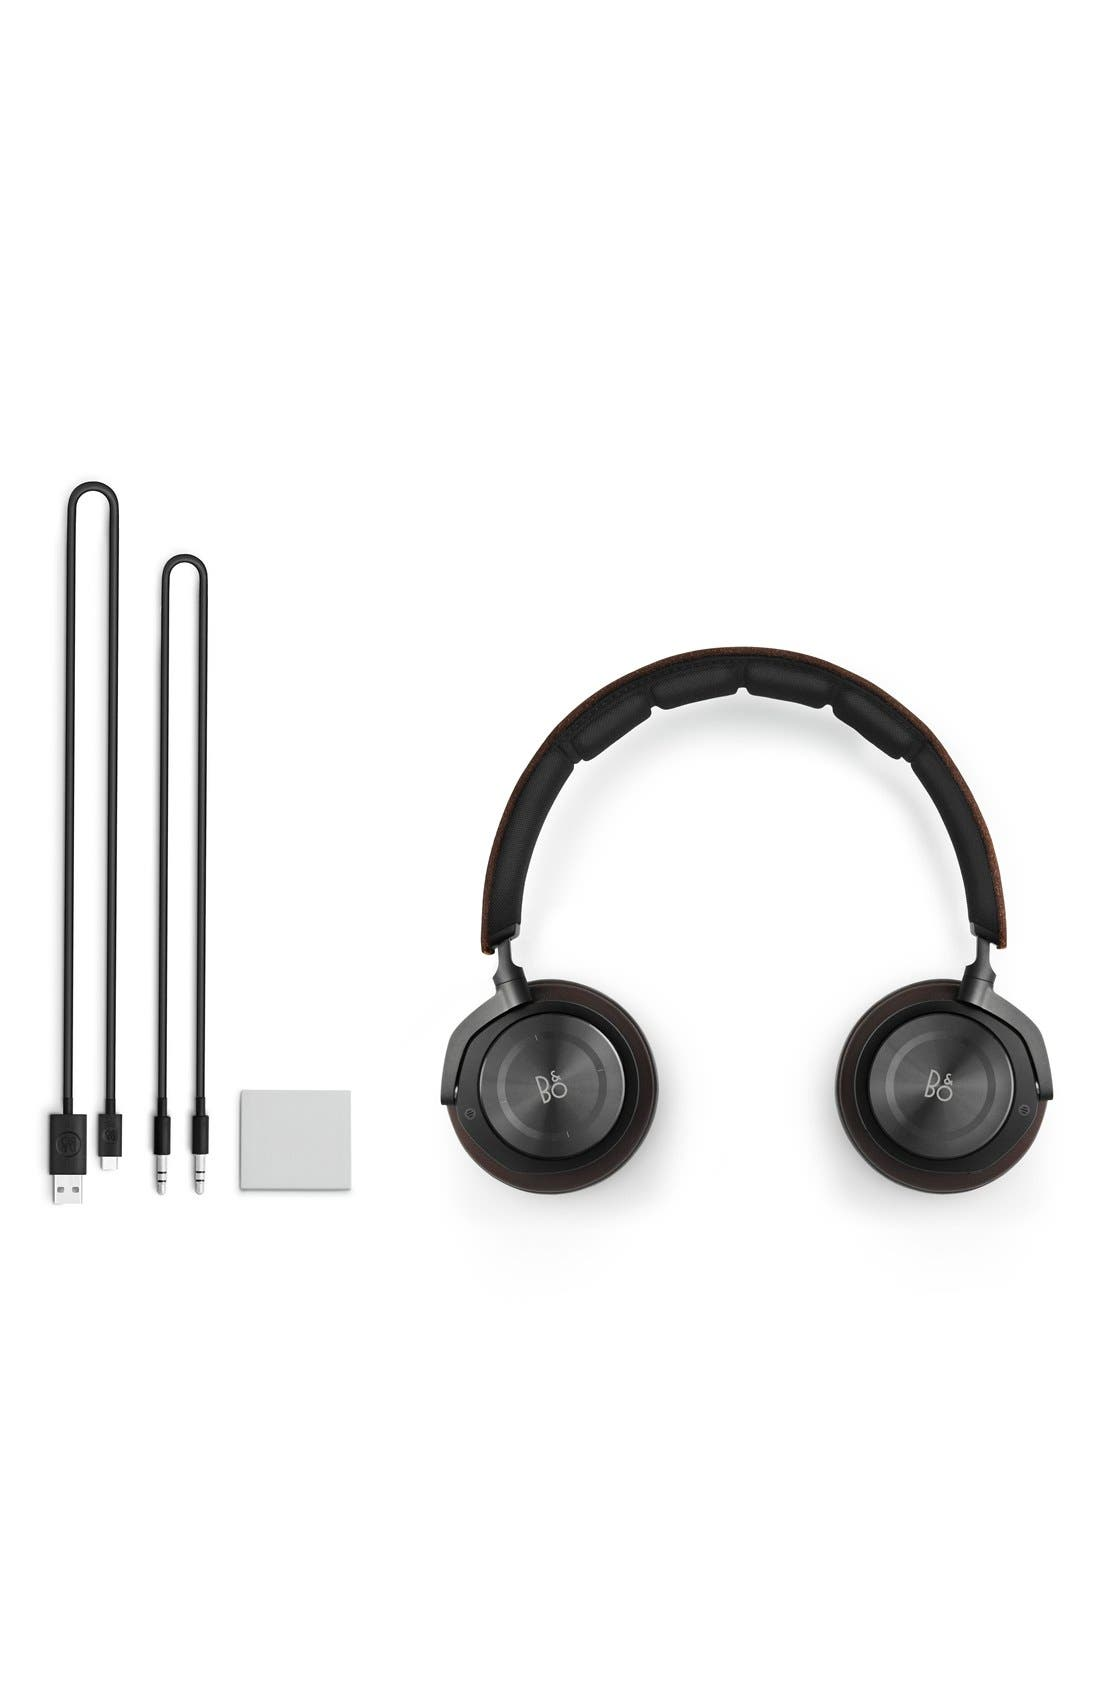 H8 ANC Over-Ear Bluetooth<sup>®</sup> Headphones,                             Alternate thumbnail 3, color,                             206